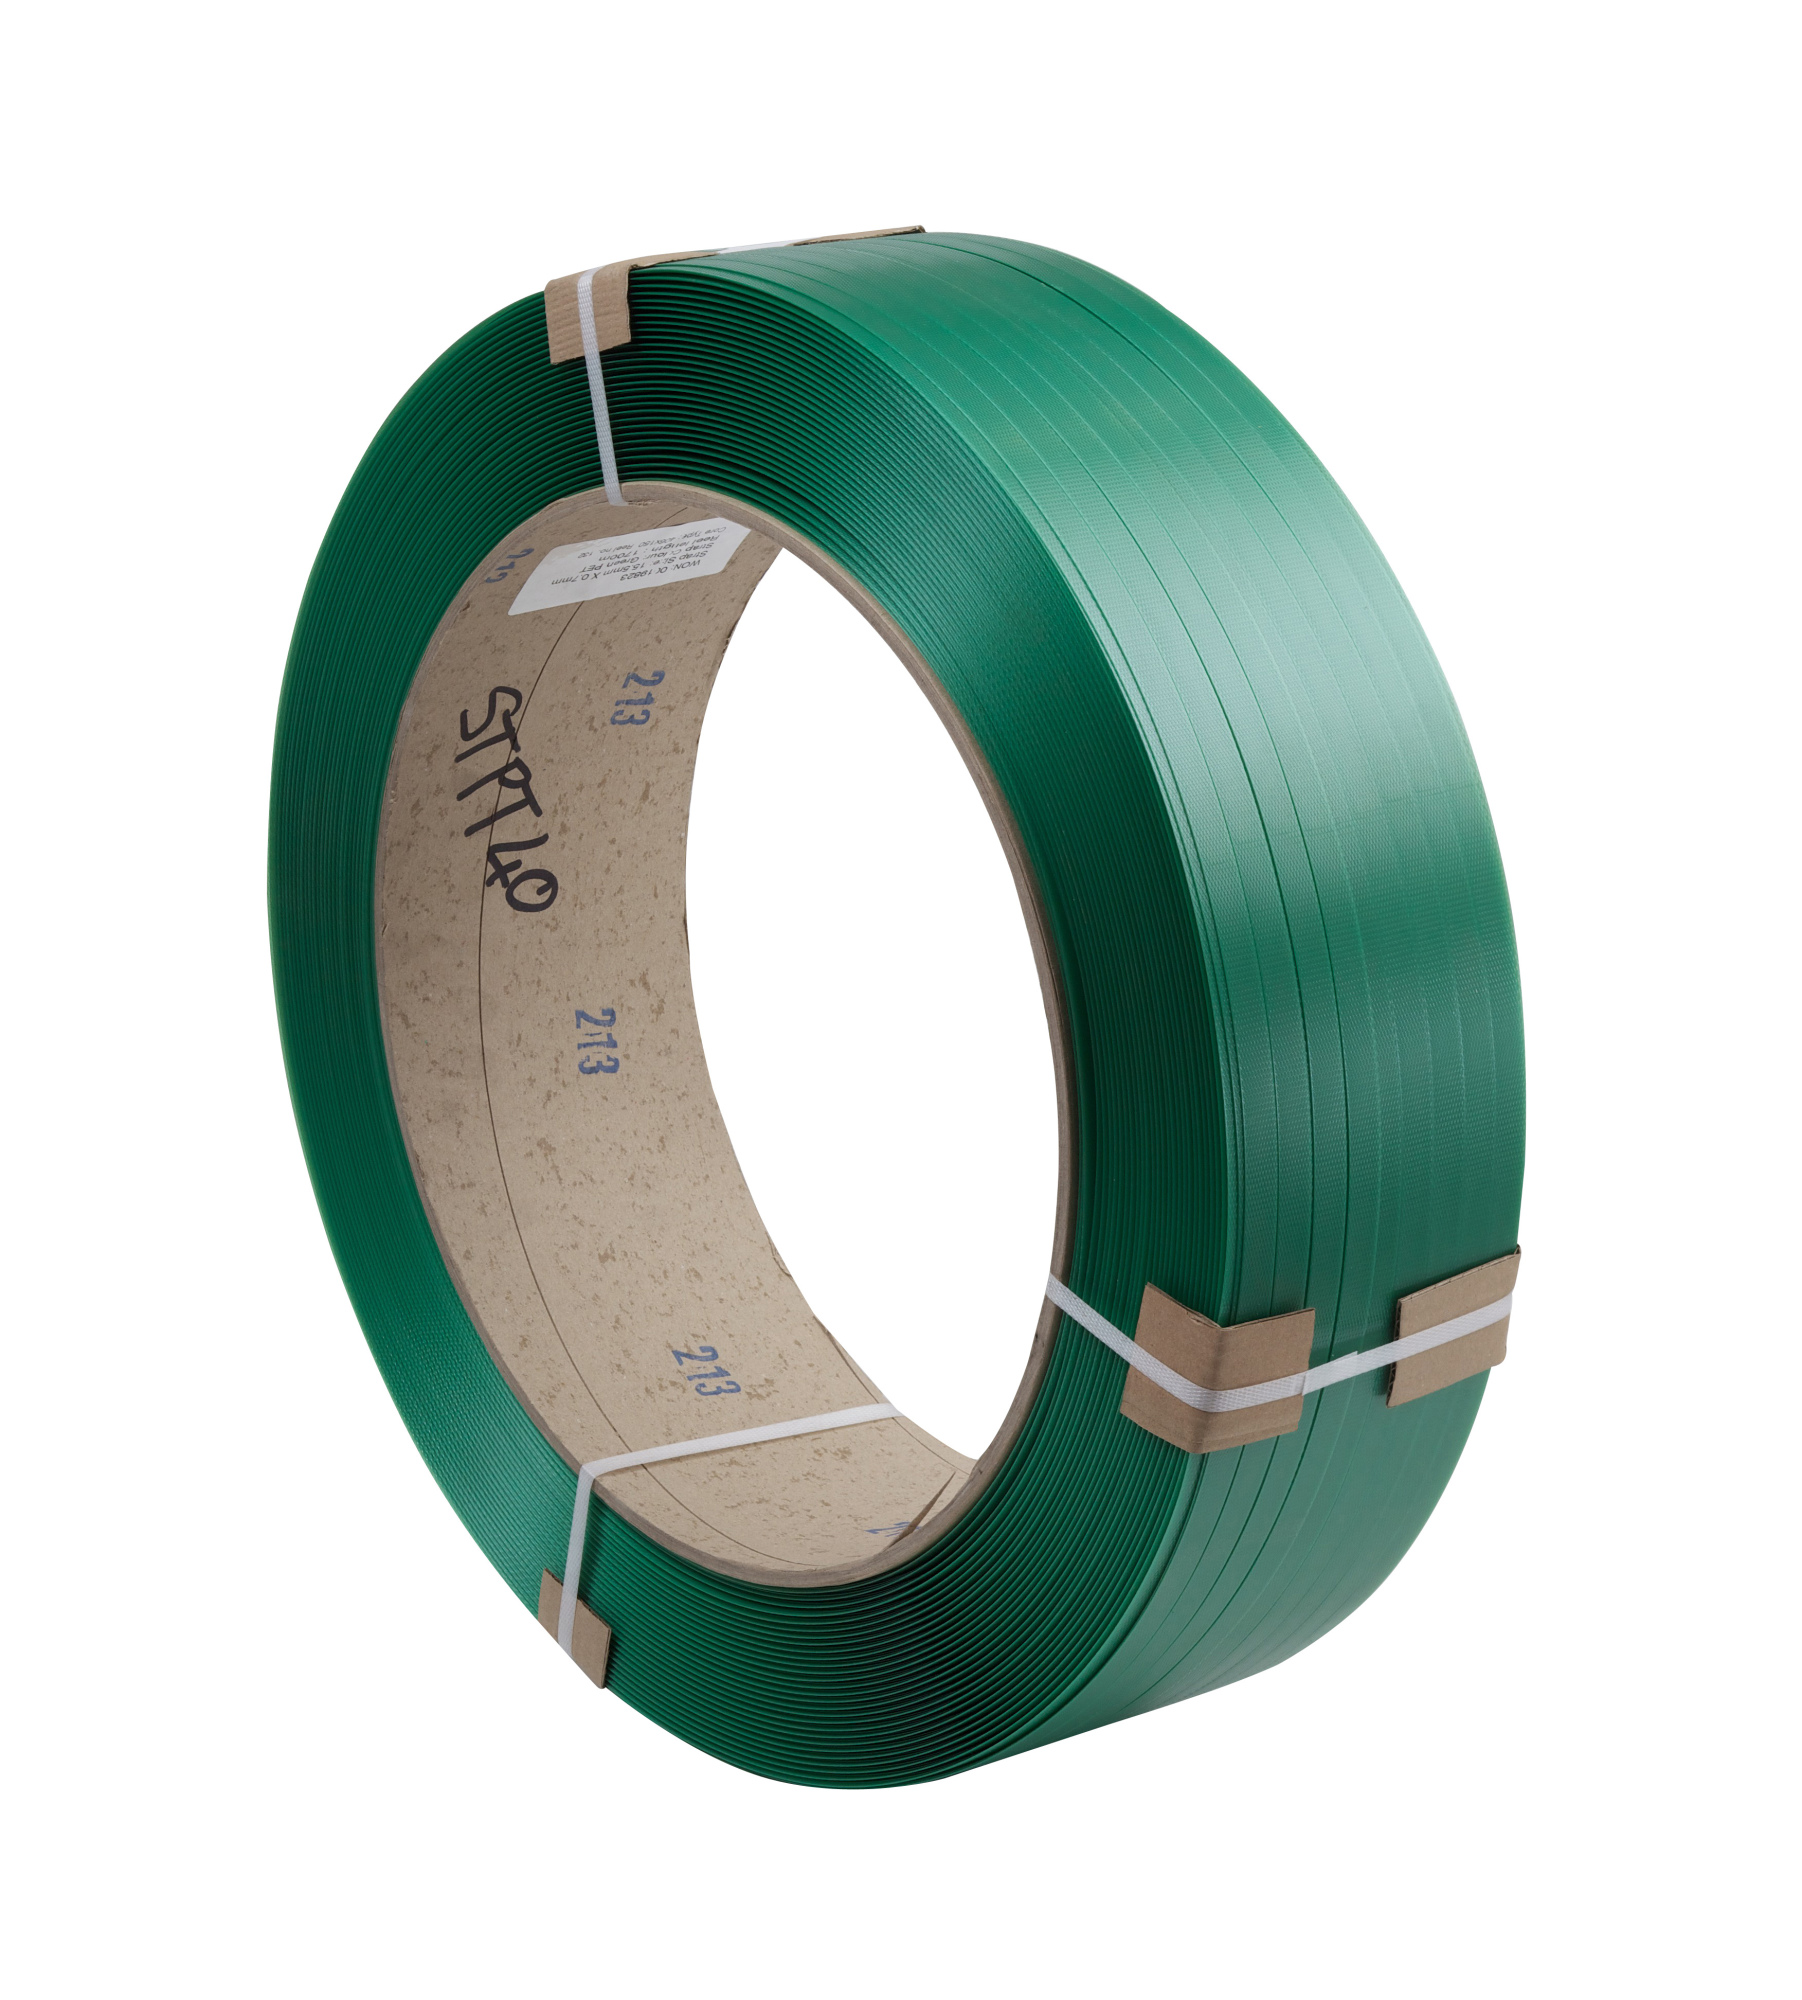 19.0 x 0.85mm x 1200m Green PET Strapping (406/150)